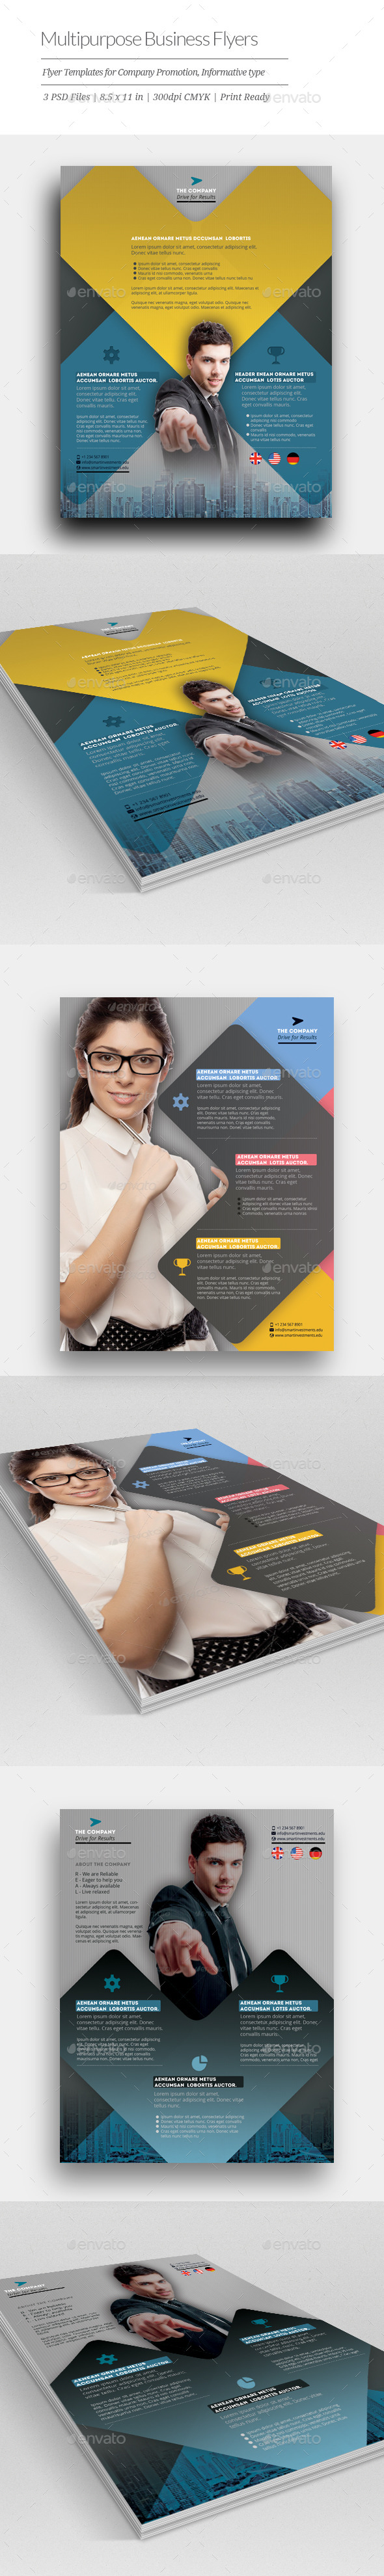 GraphicRiver Multipurpose Business Flyer Templates 11149593